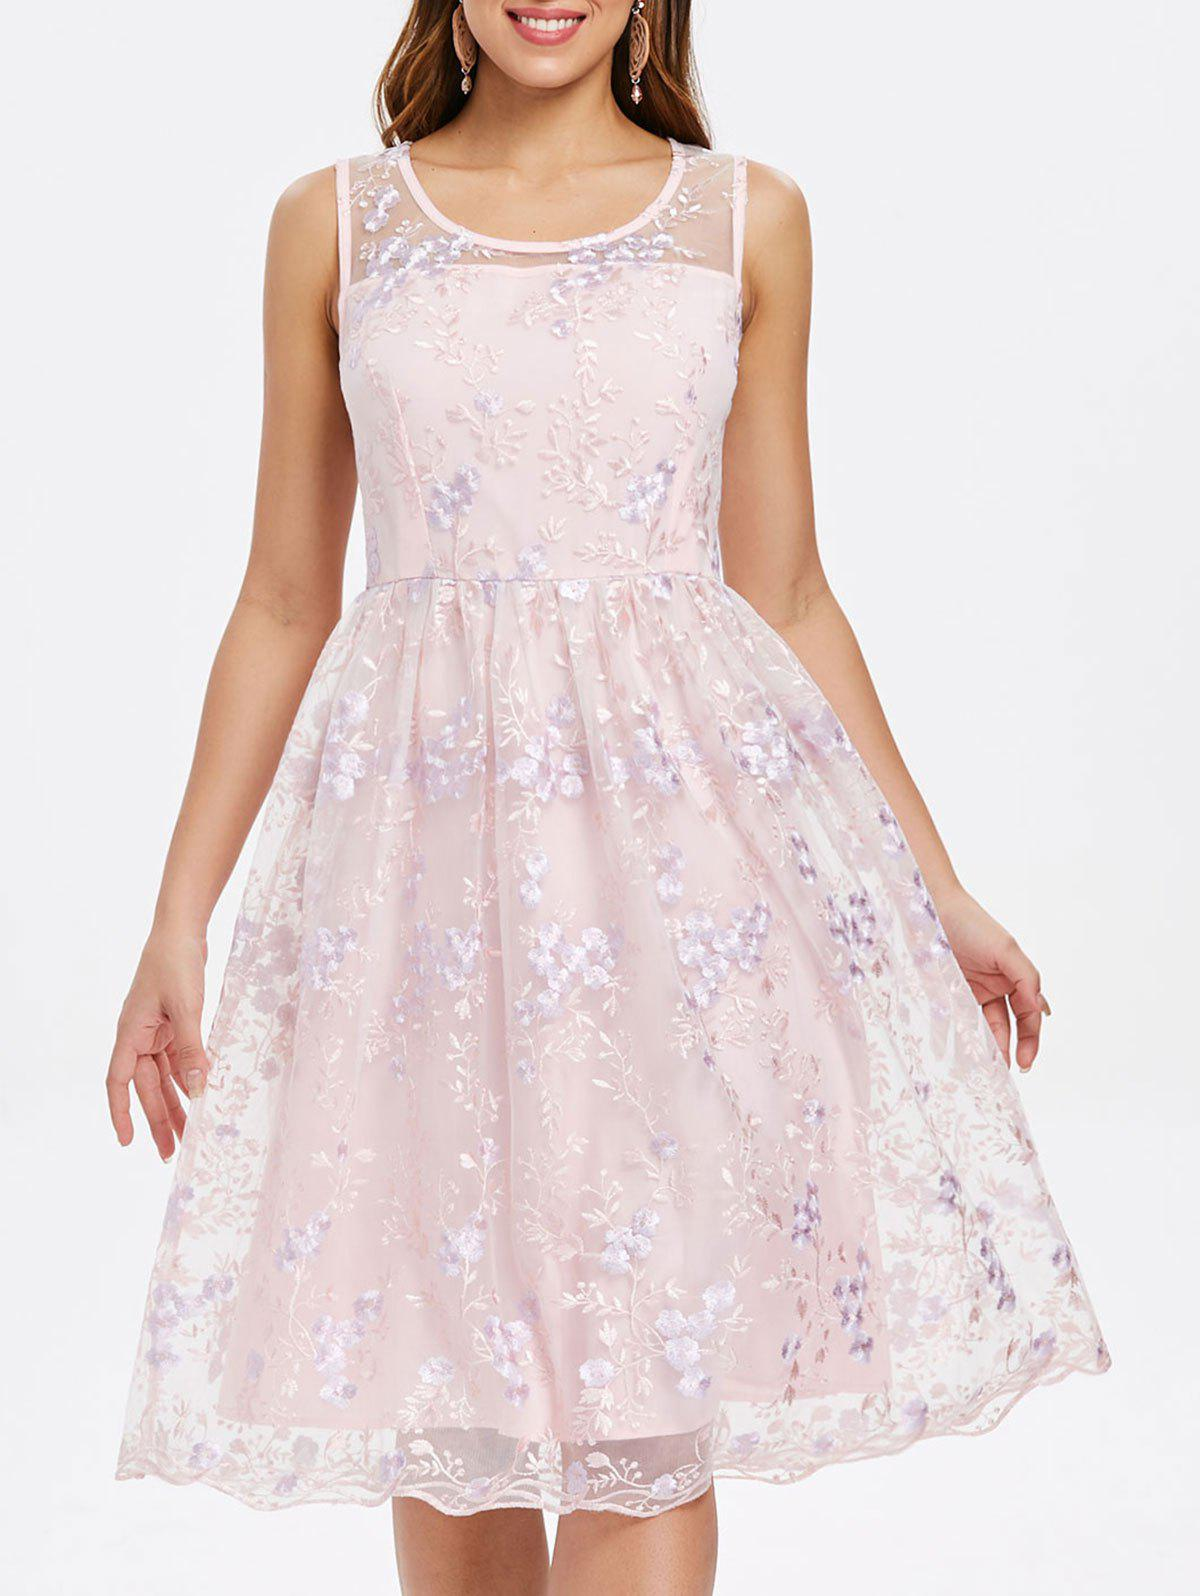 Fancy Floral Embroidery Sleeveless A Line Dress